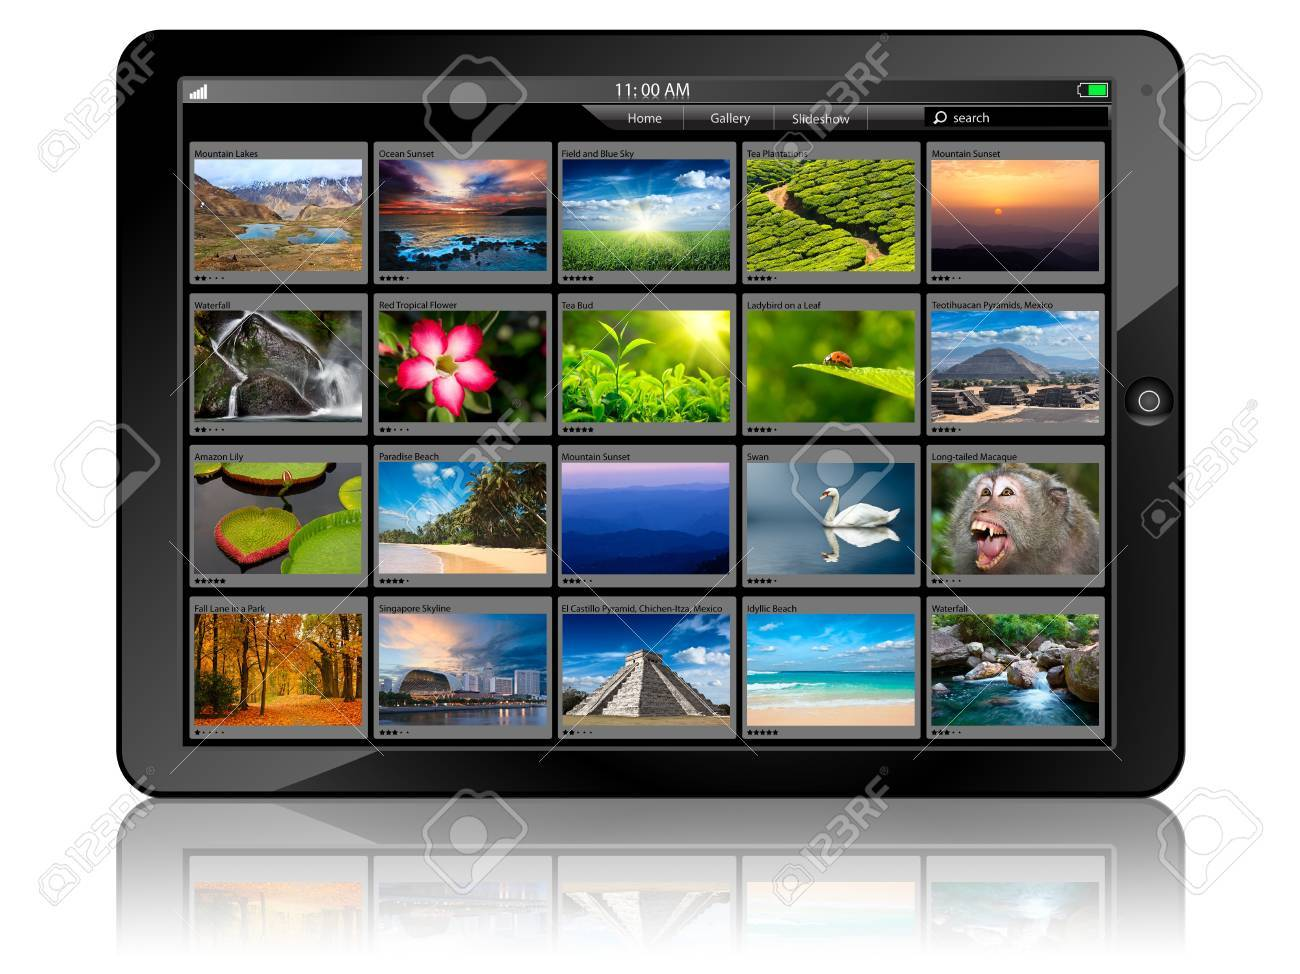 Tablet PC with photo gallery Stock Photo - 11547084